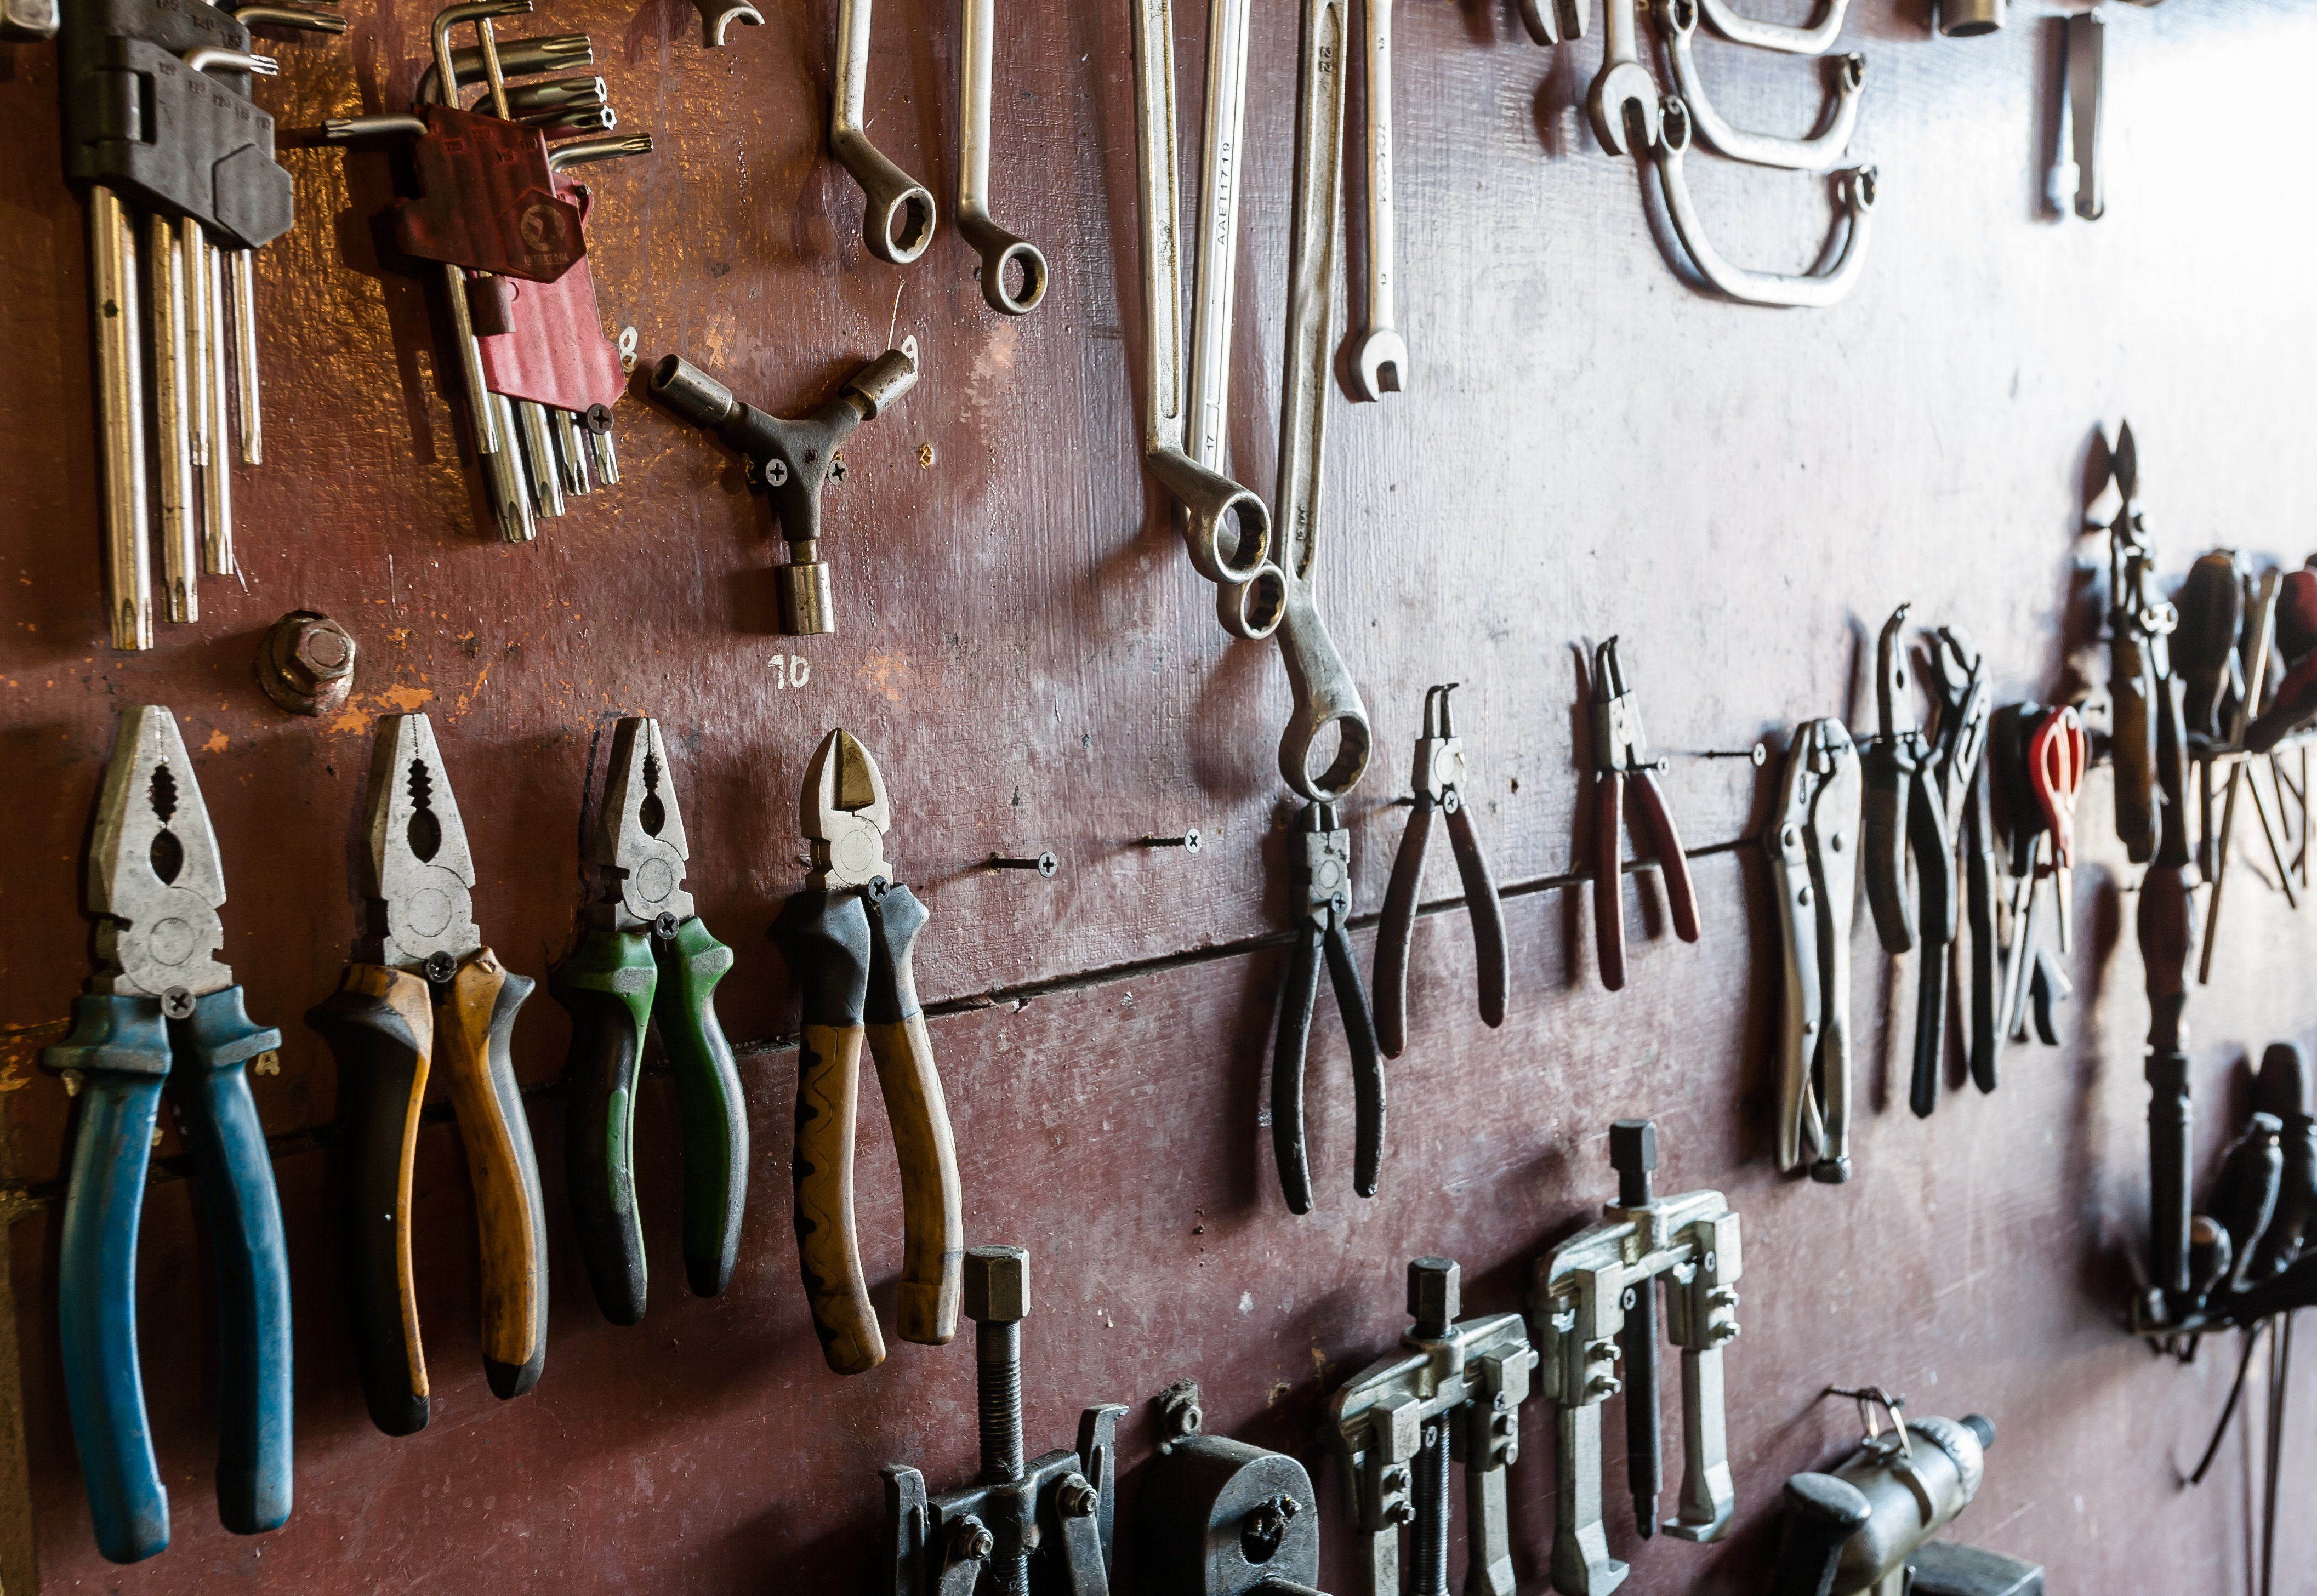 tools hanging on a wall